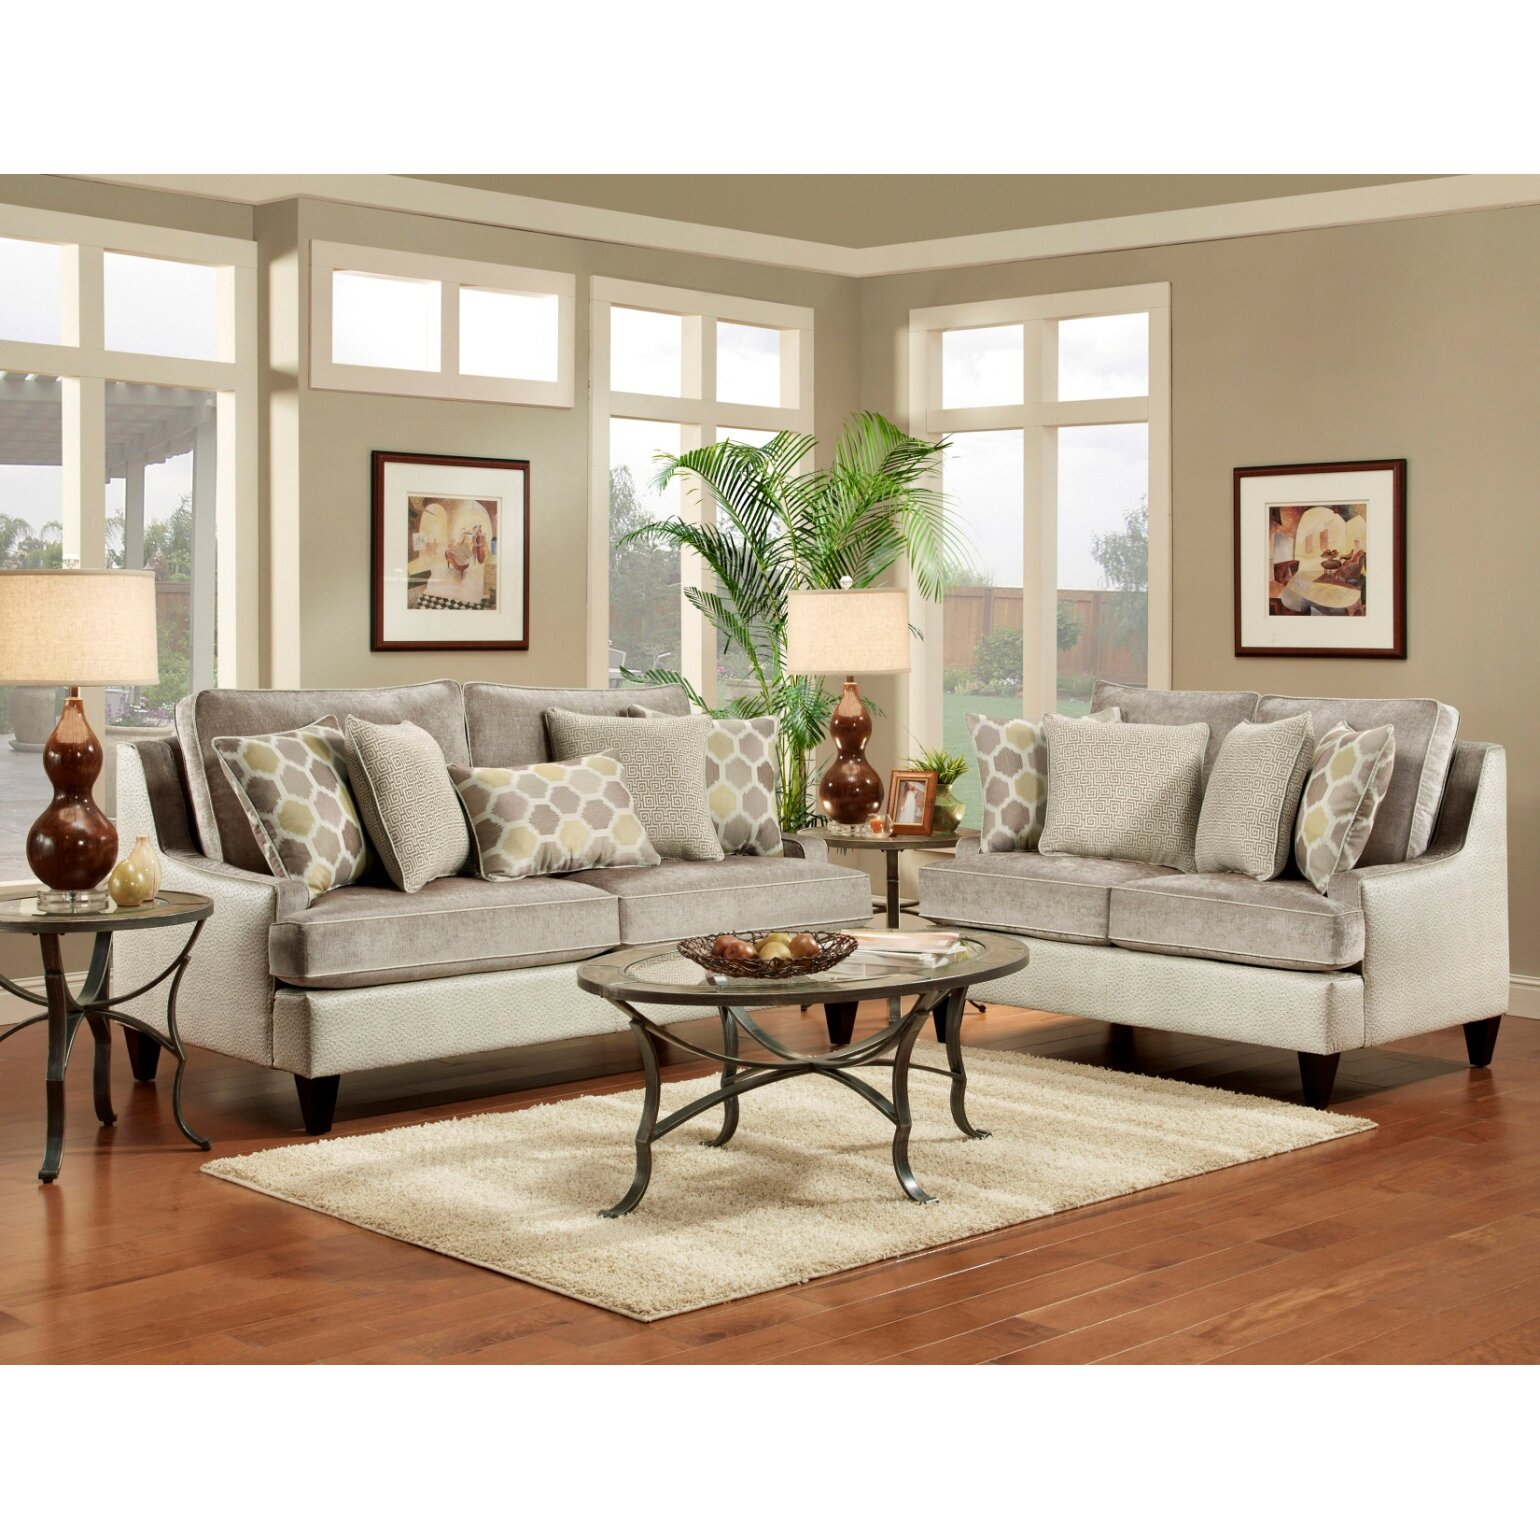 Wildon Home Monte Carlo Living Room Collection Reviews